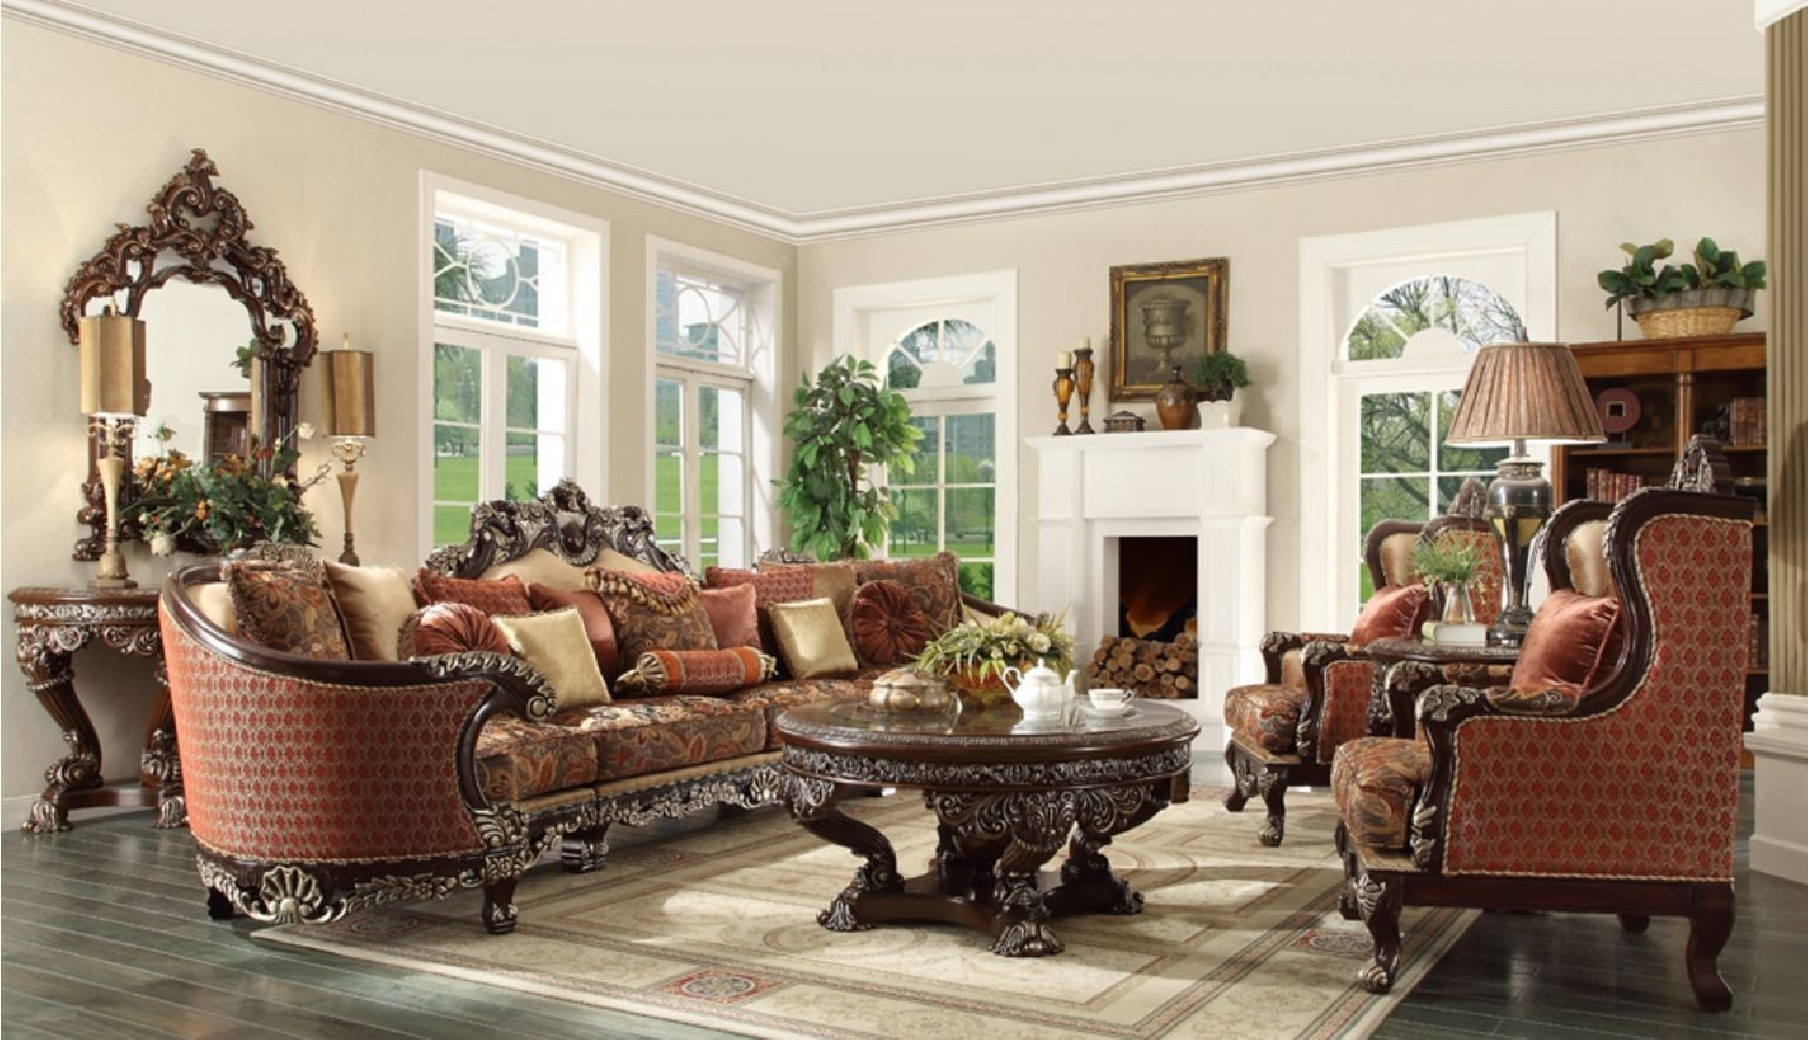 Hd 111 homey design upholstery living room set victorian for Hd designs home decor